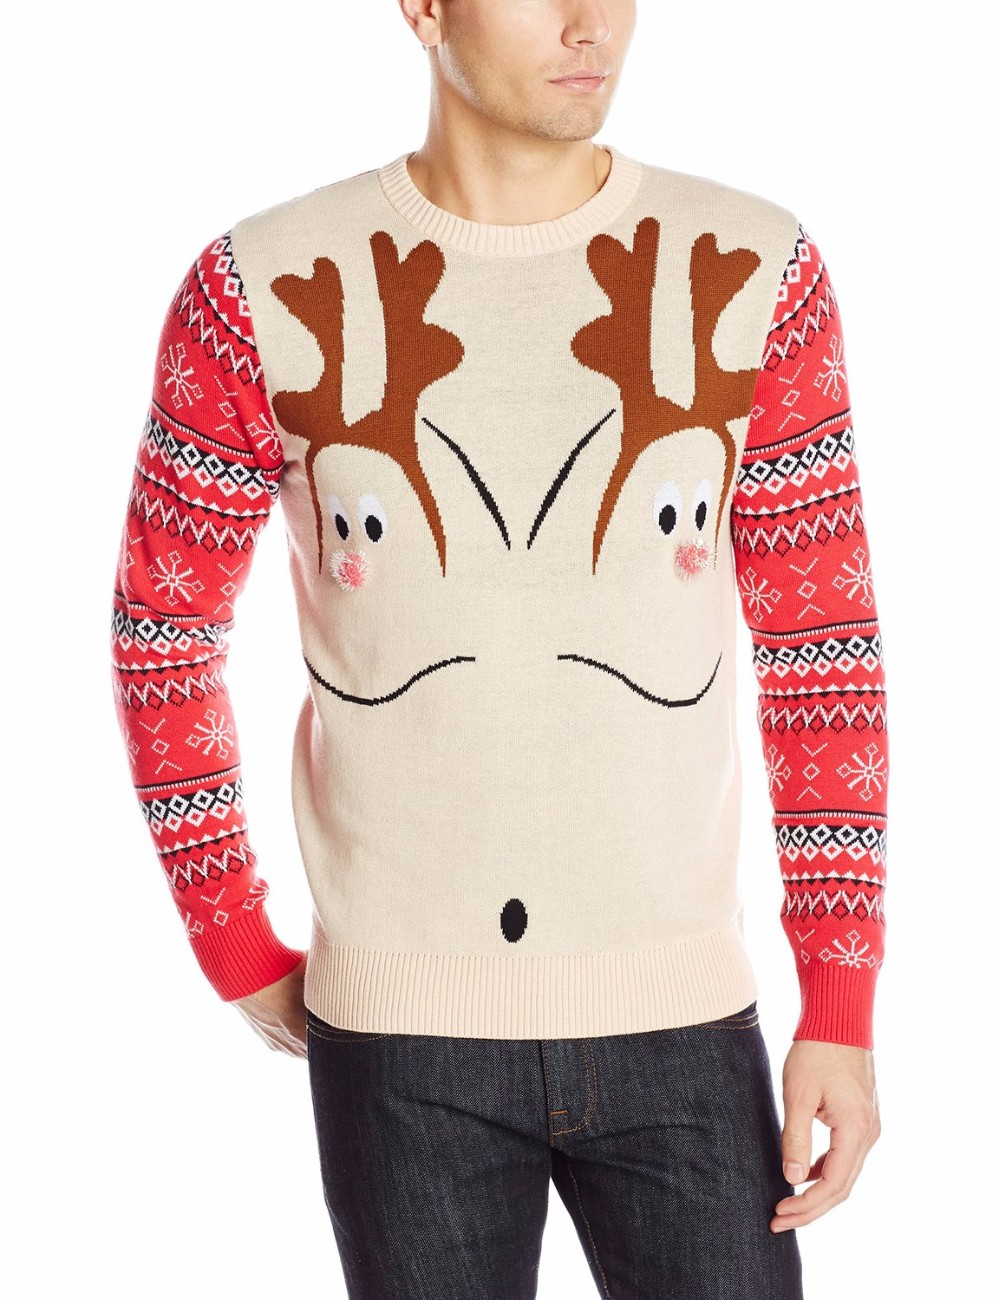 Knitted Jumper For Men, Knitted Jumper For Men Suppliers and ...